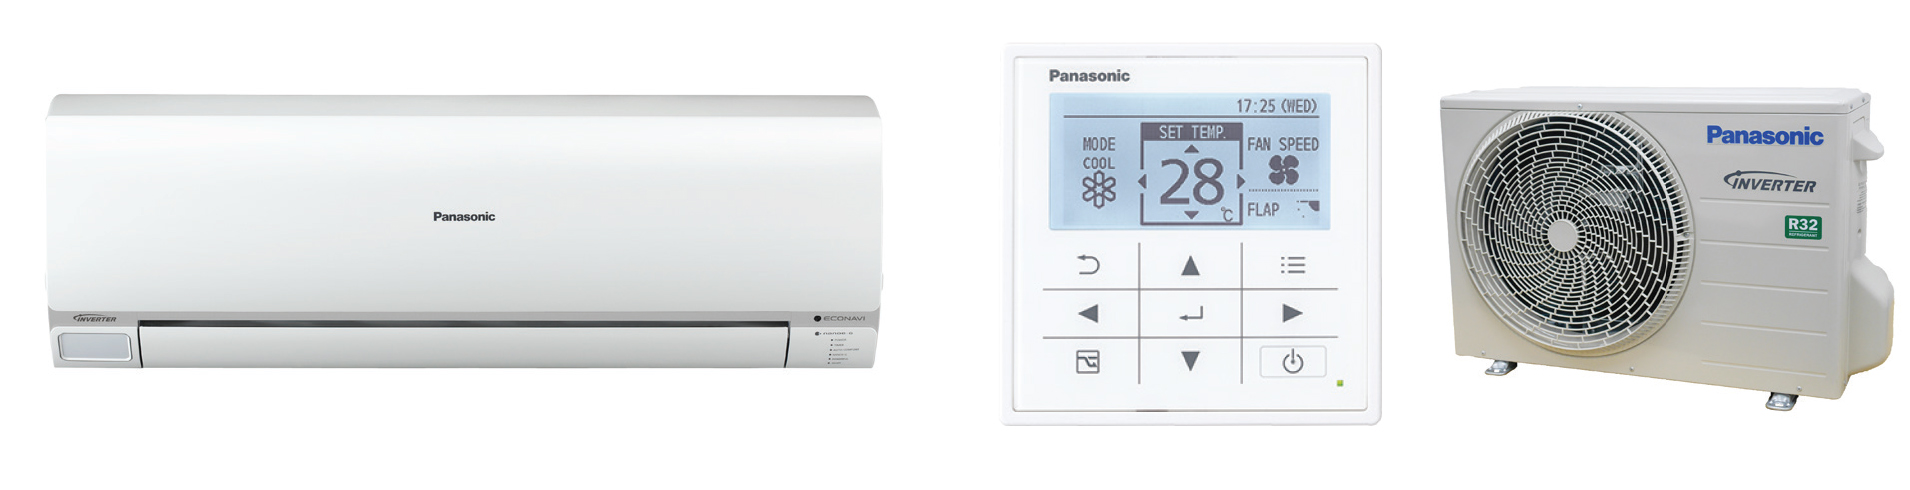 Panasonic Air Conditioning Split System